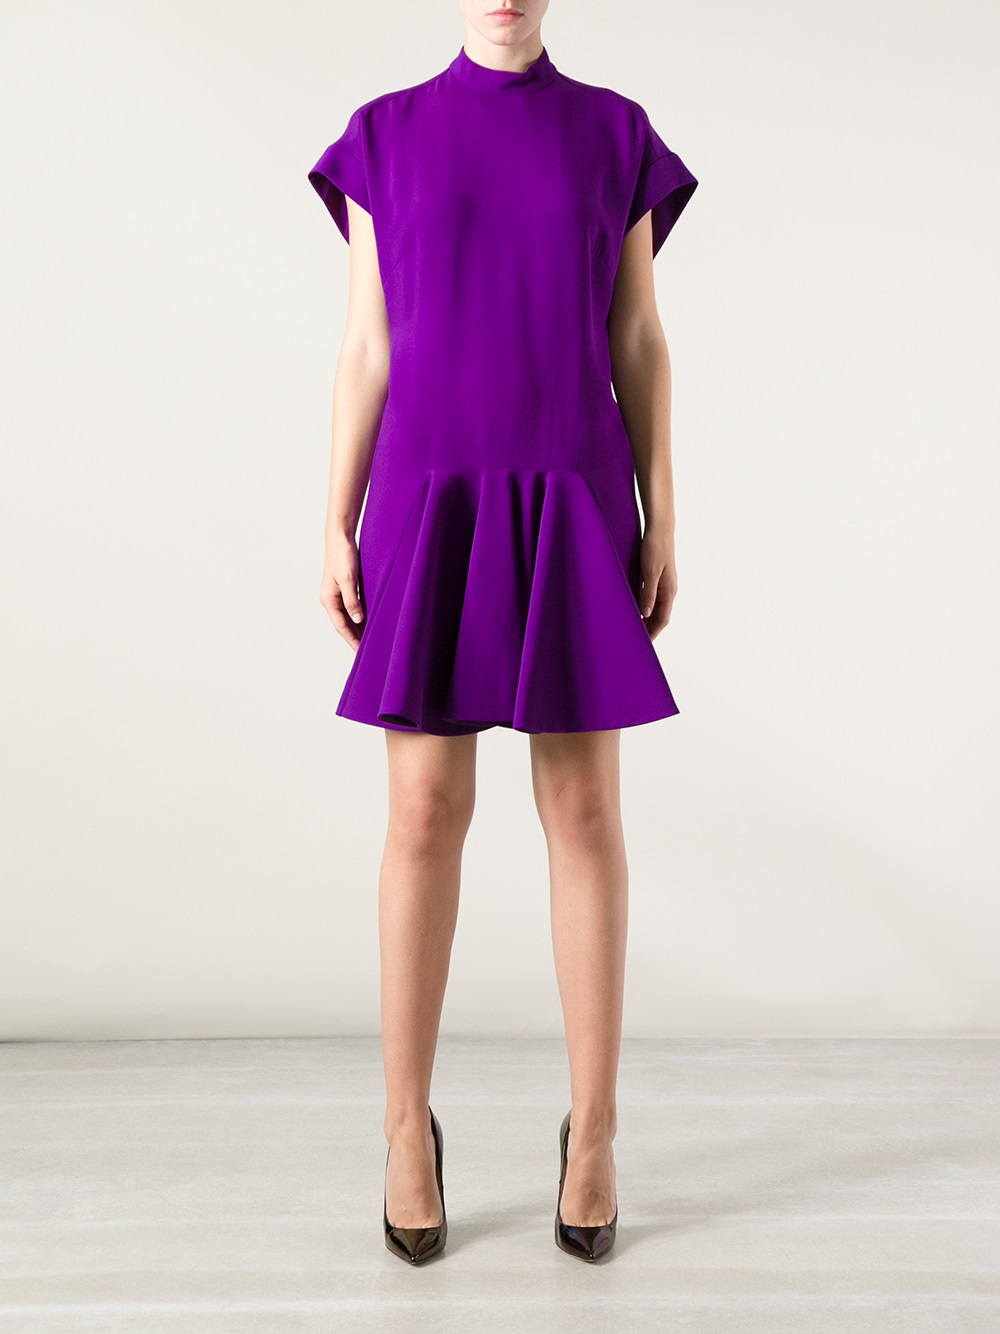 Stella Mccartney Pleated Dress In Pink Amp Purple Purple